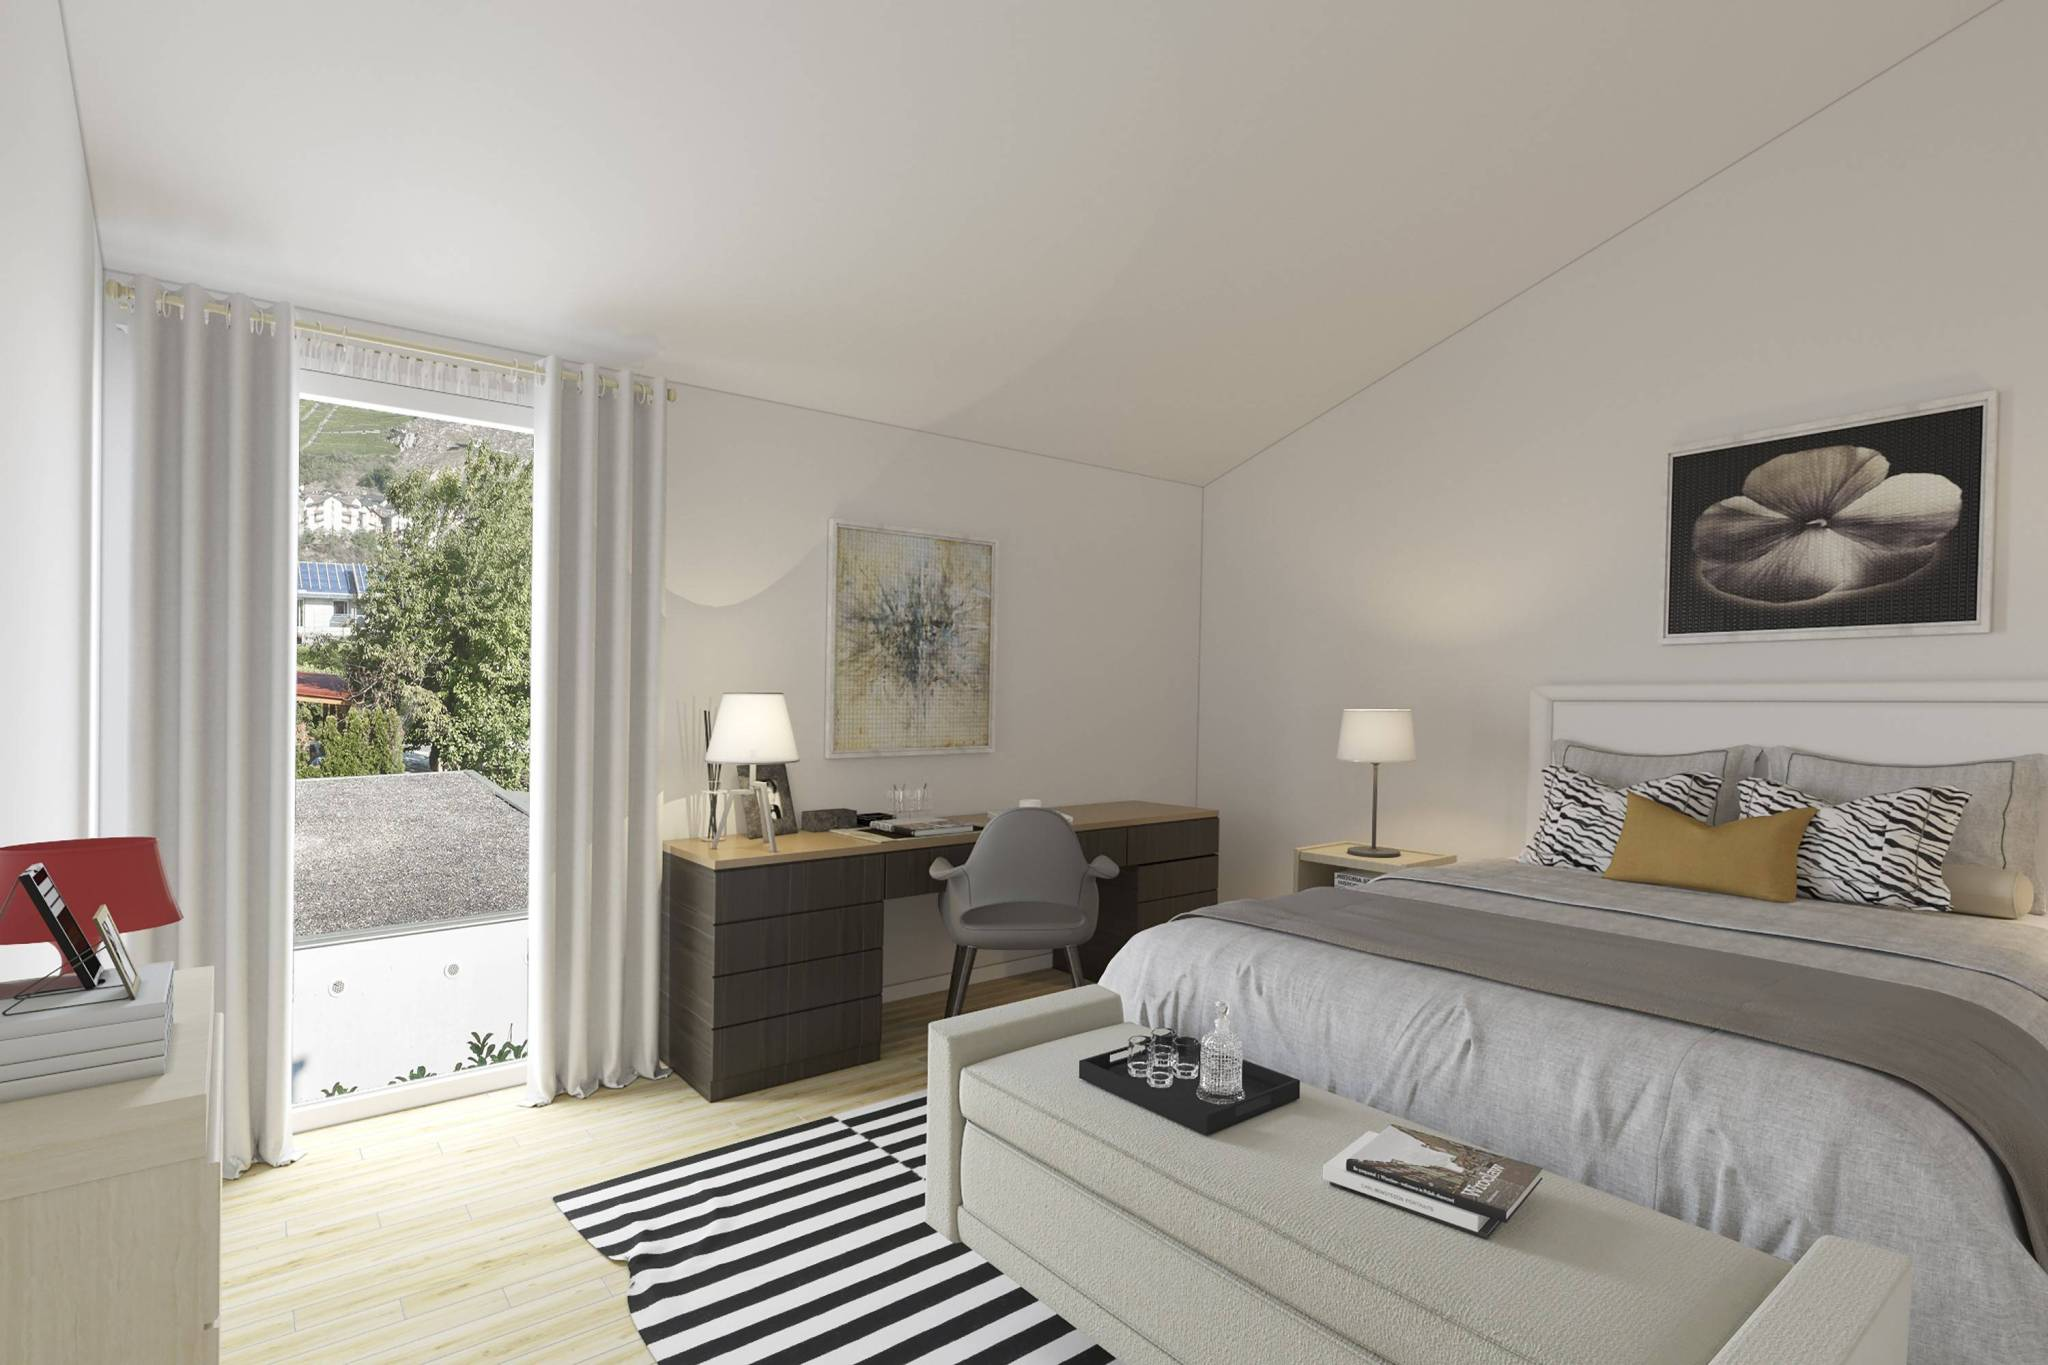 Home staging virtuel Chambre rénovée